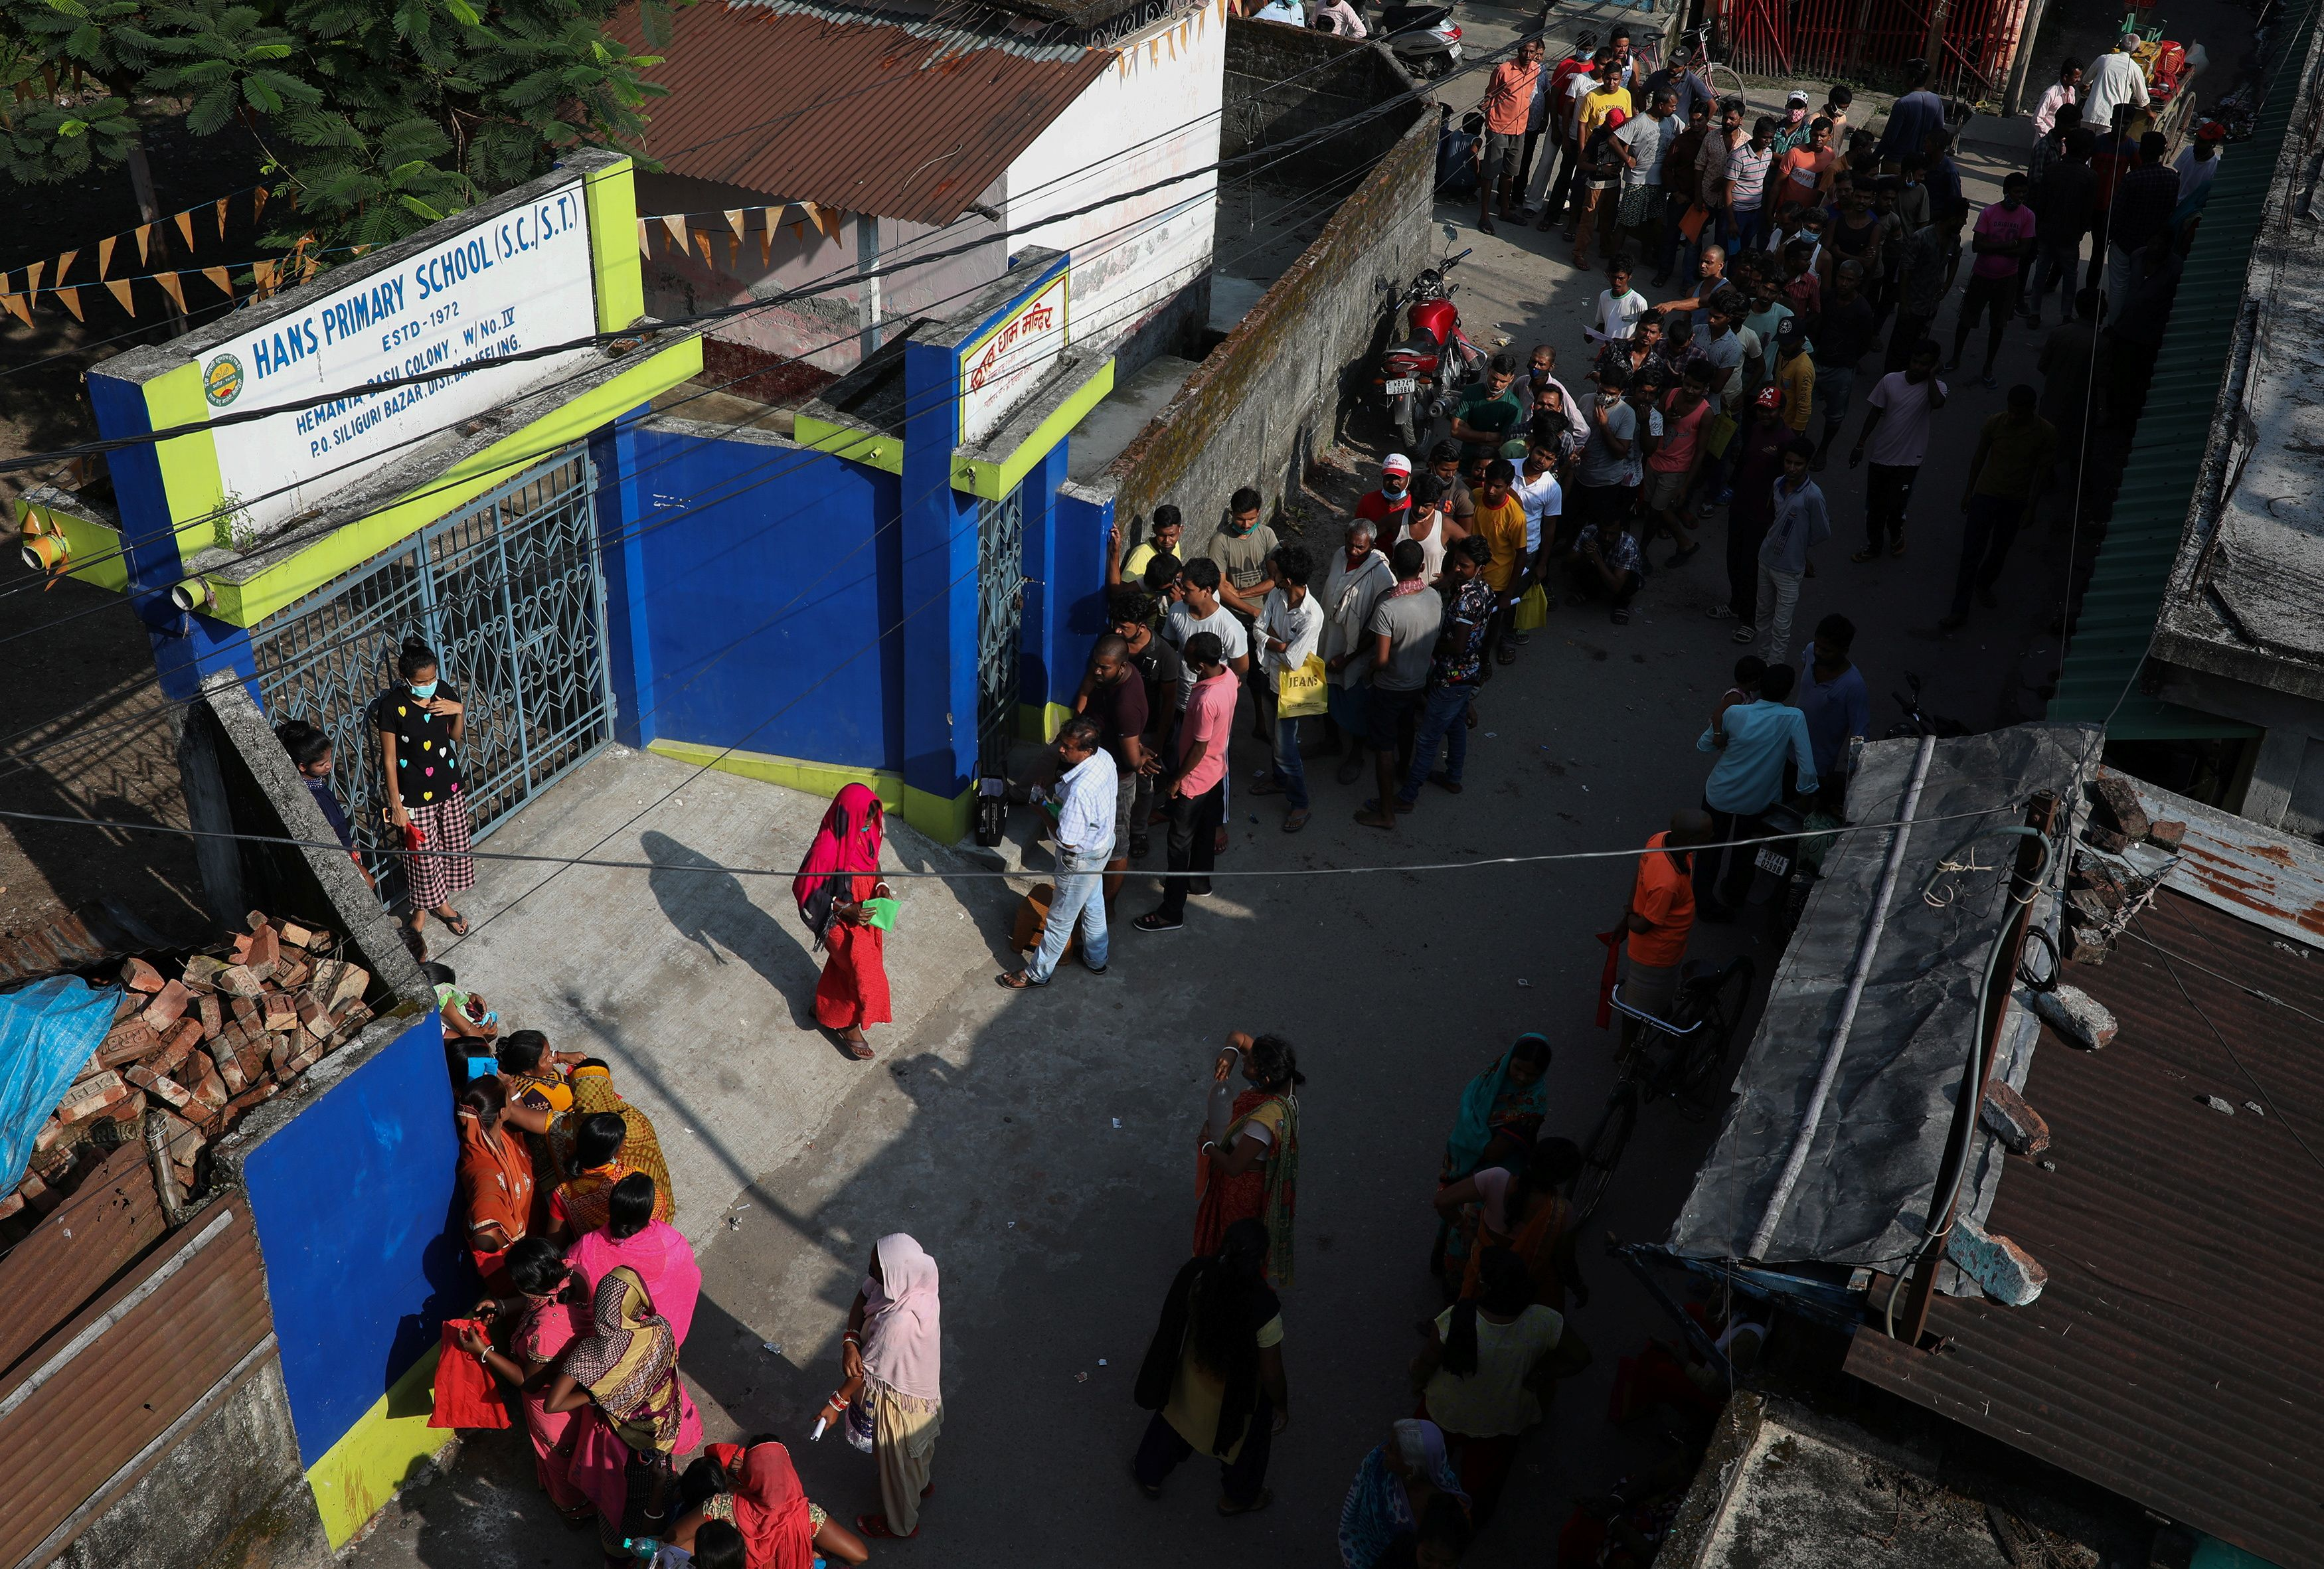 People stand in a queue to receive a dose of COVISHIELD vaccine,  manufactured by Serum Institute of India, outside a vaccination centre in Siliguri in the eastern state of West Bengal, India, October 7, 2021. Picture taken on October 7, 2021. REUTERS/Rupak De Chowdhuri